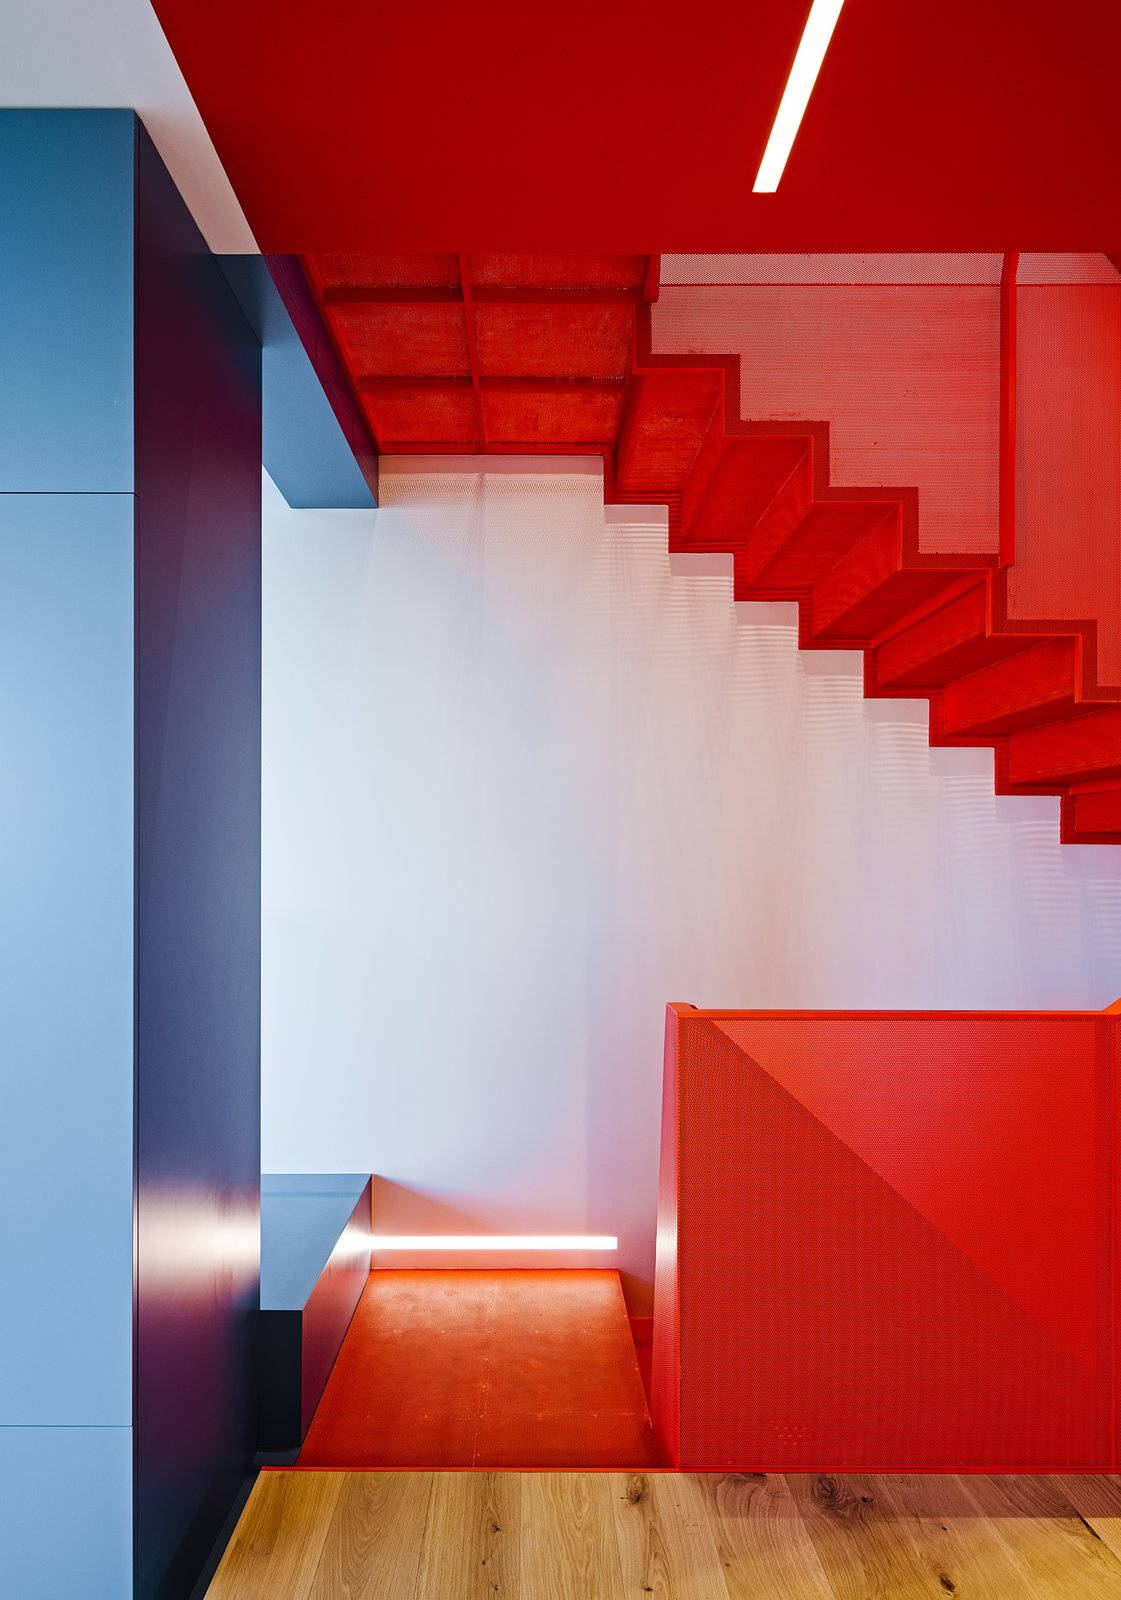 A perforated-metal staircase in Benjamin Moore's Flame and built-in cabinetry in various shades of blue highlight Fougeron Architecture's bold reinvention of a narrow row house in Noe Valley for a couple and their daughter.